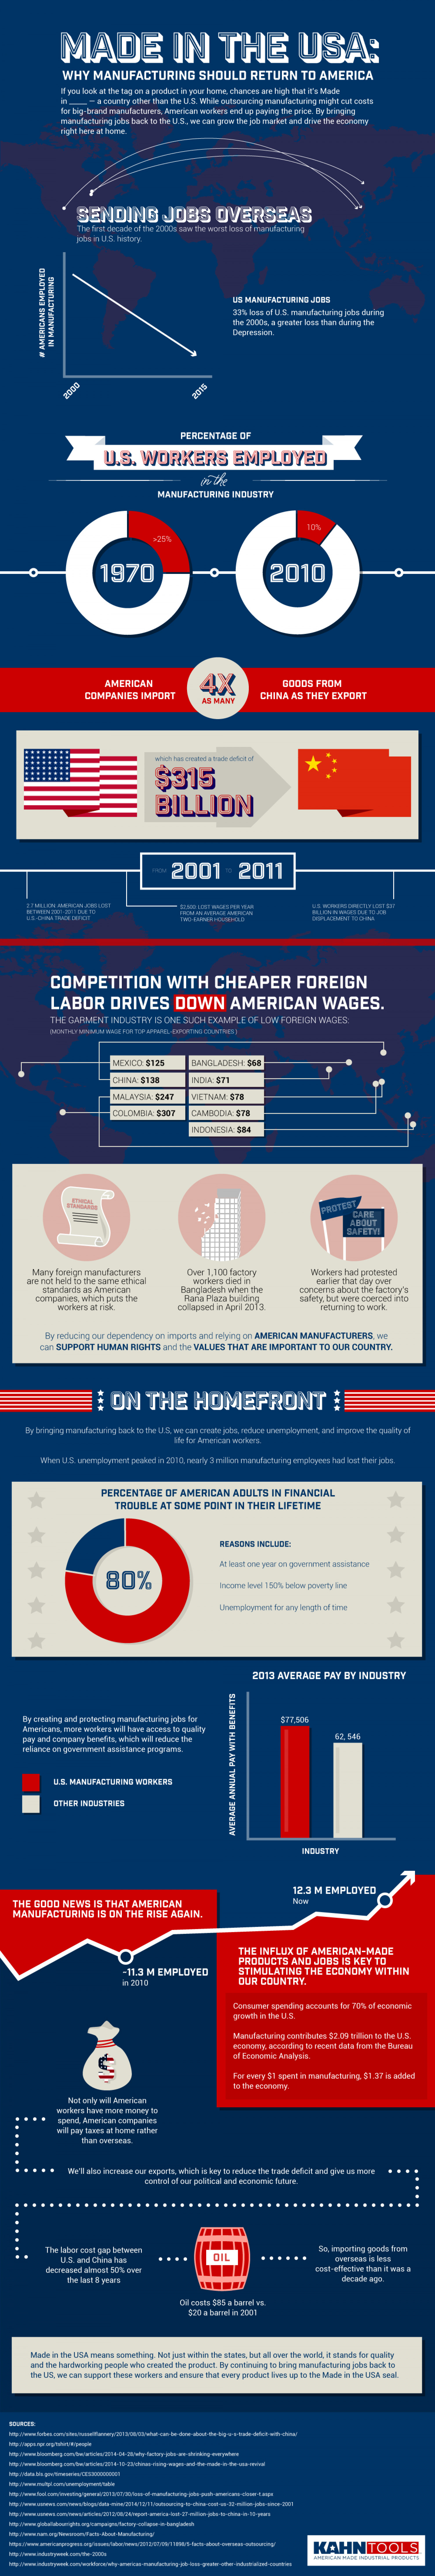 Made in the USA: Why Manufacturing should return to America Infographic